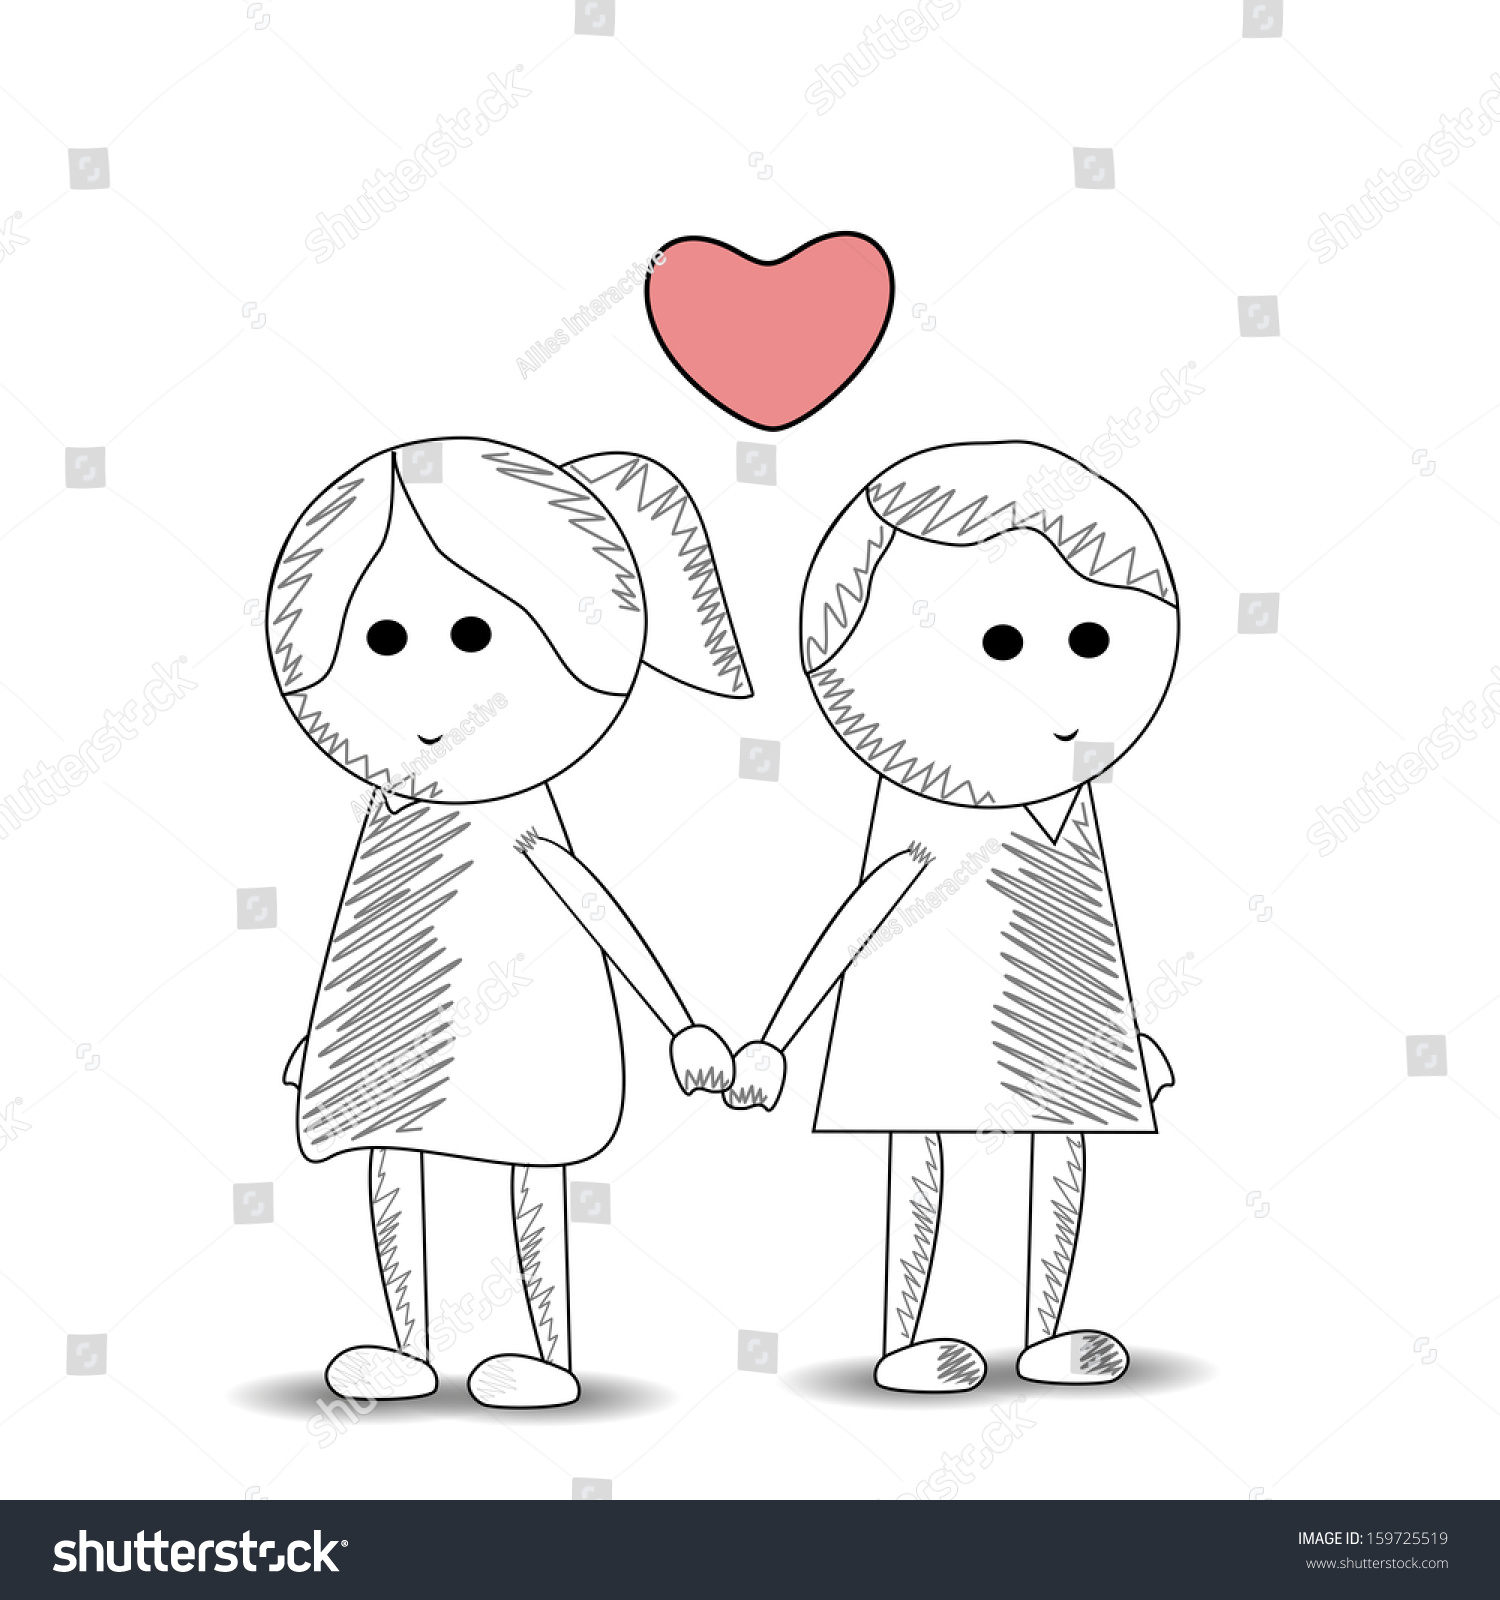 Sketch of cute kids couple holding hands love concept isolated on white